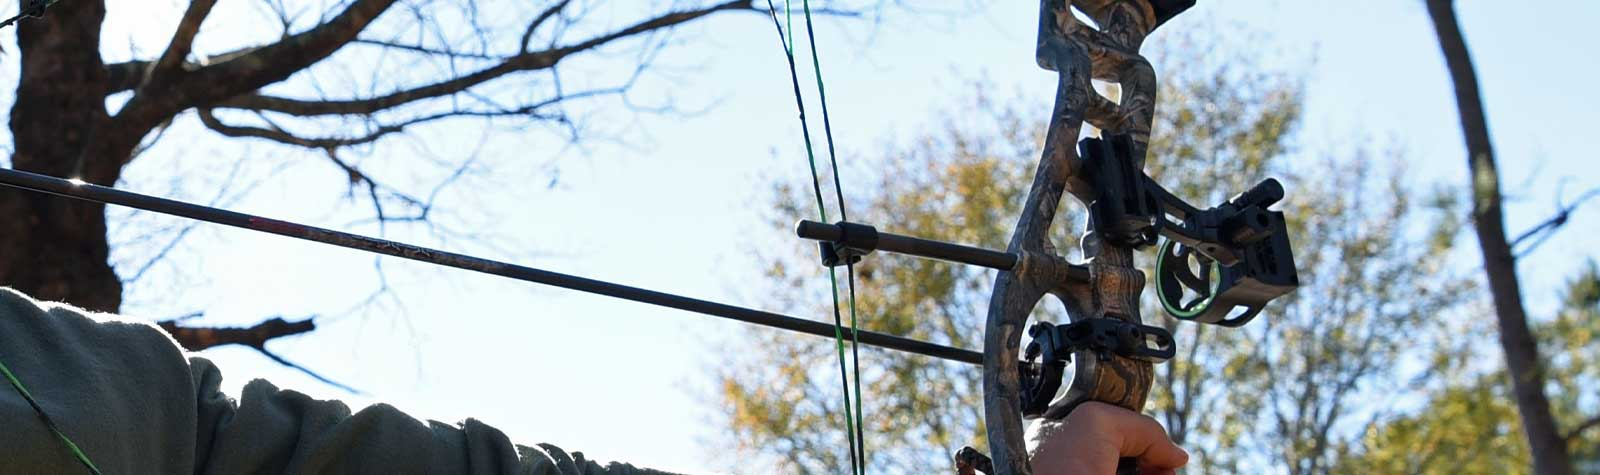 How To Aim Properly With A Compound Bow